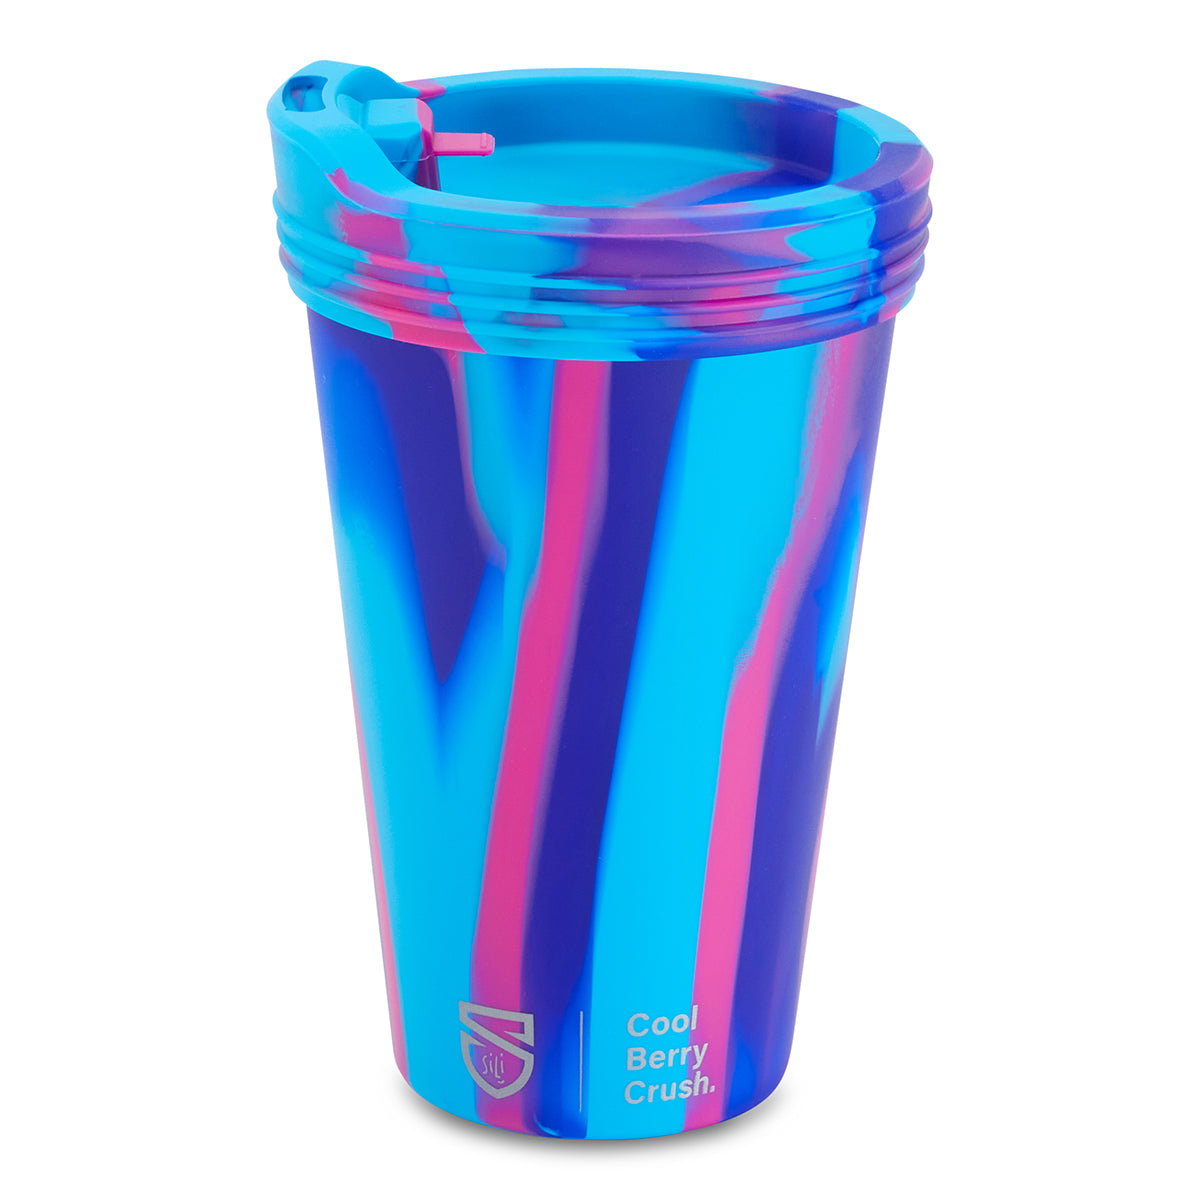 16oz Tumbler - Cool Berry Crush